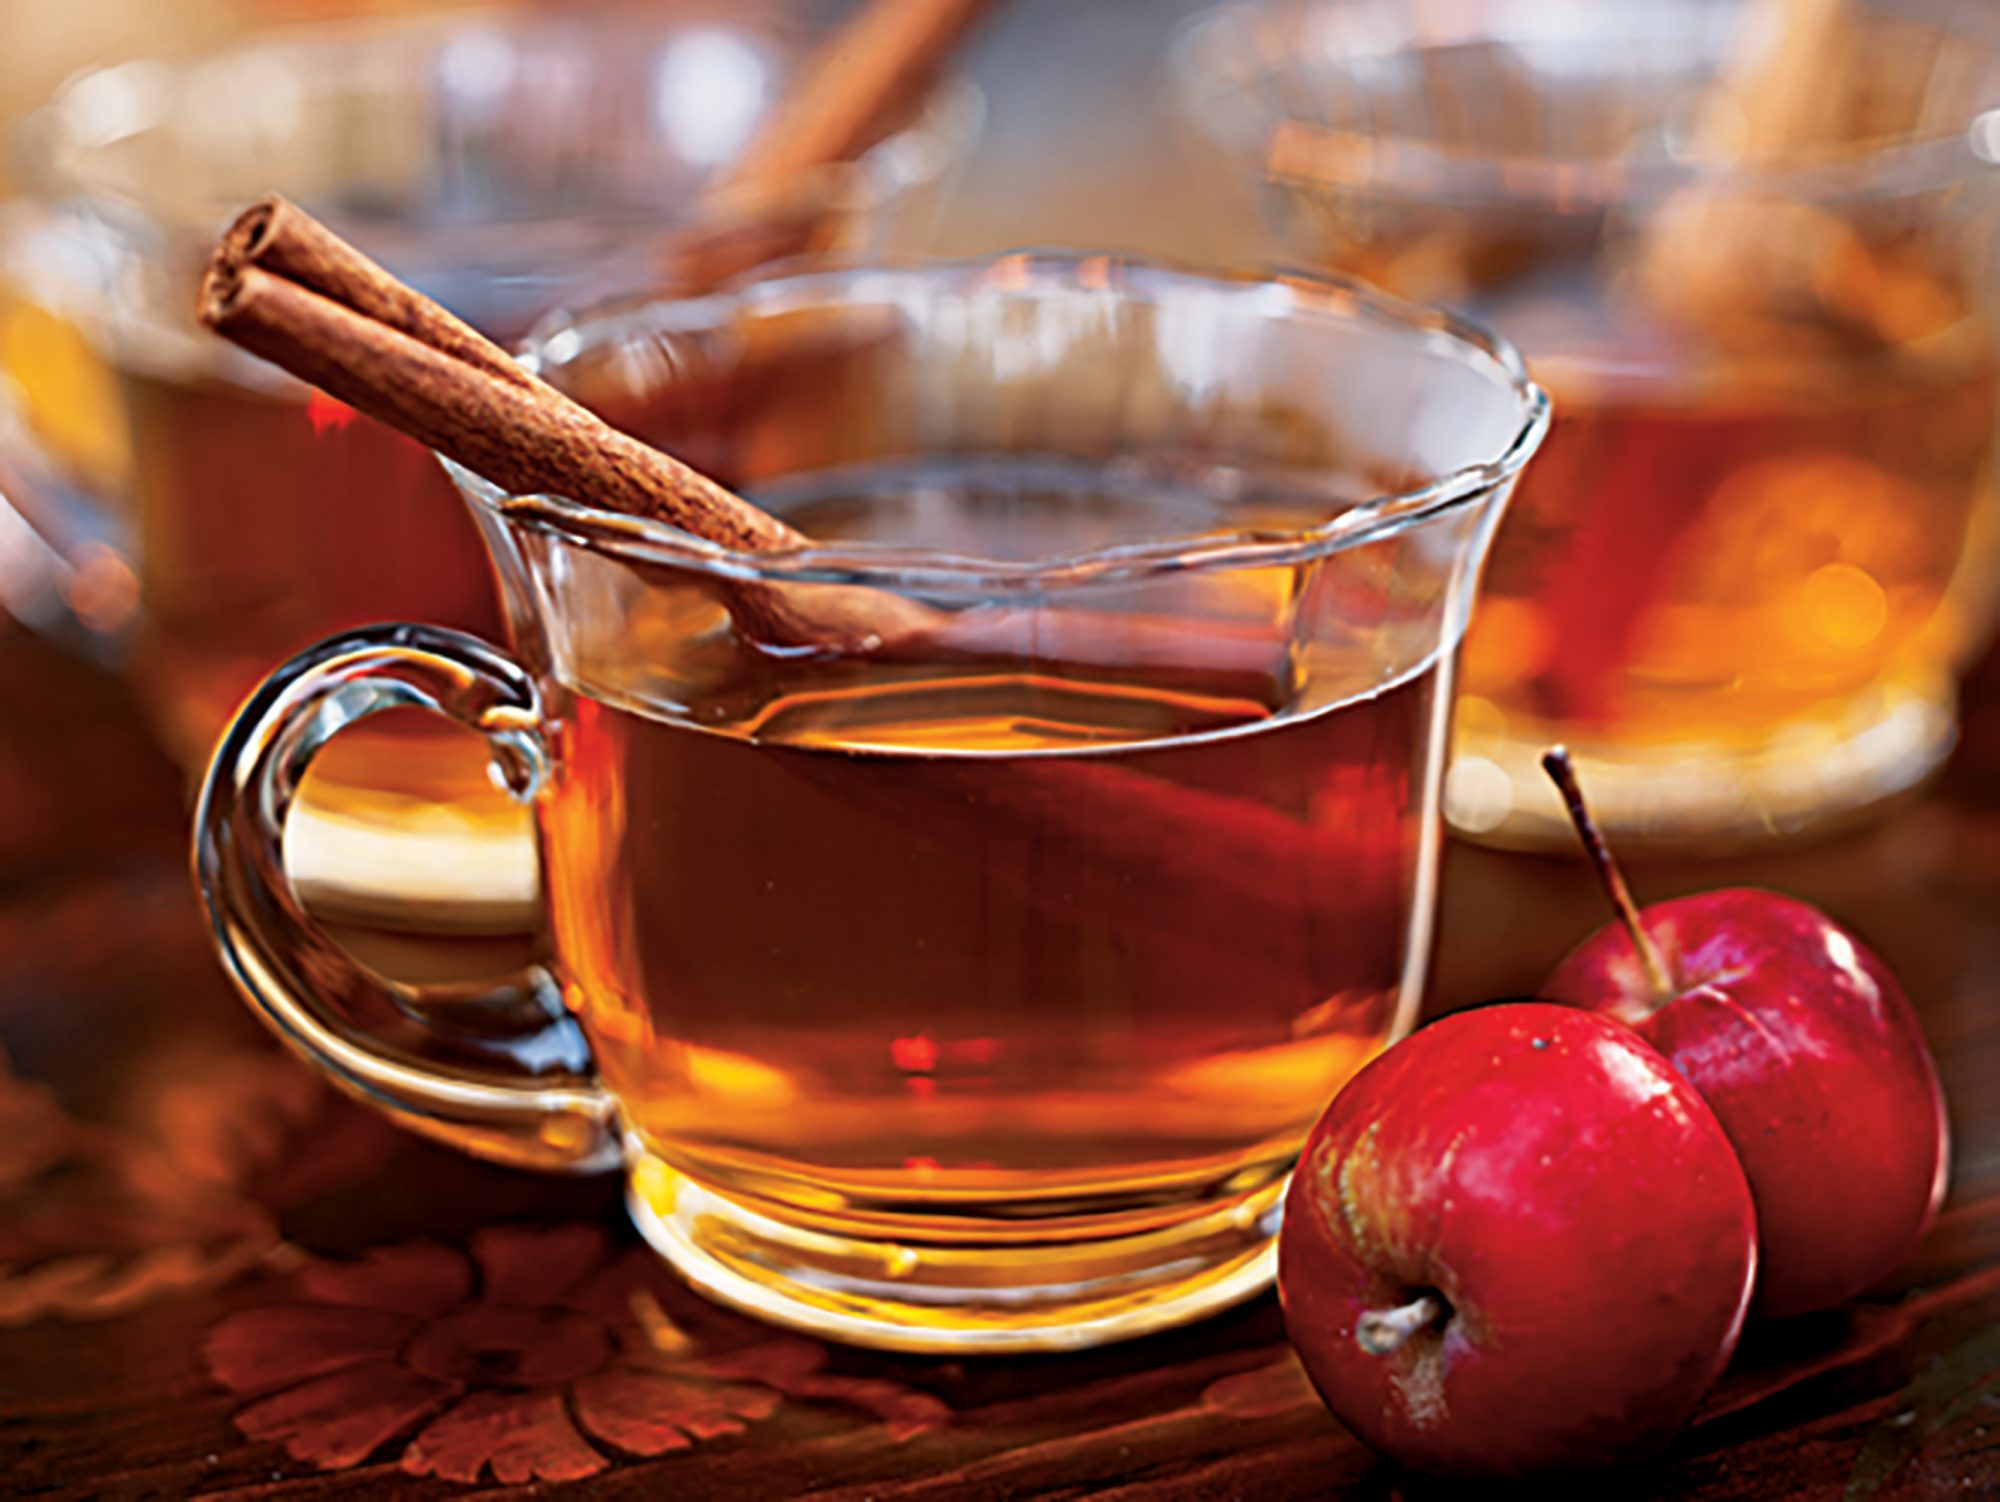 Spiced Cider Recipe Myrecipes